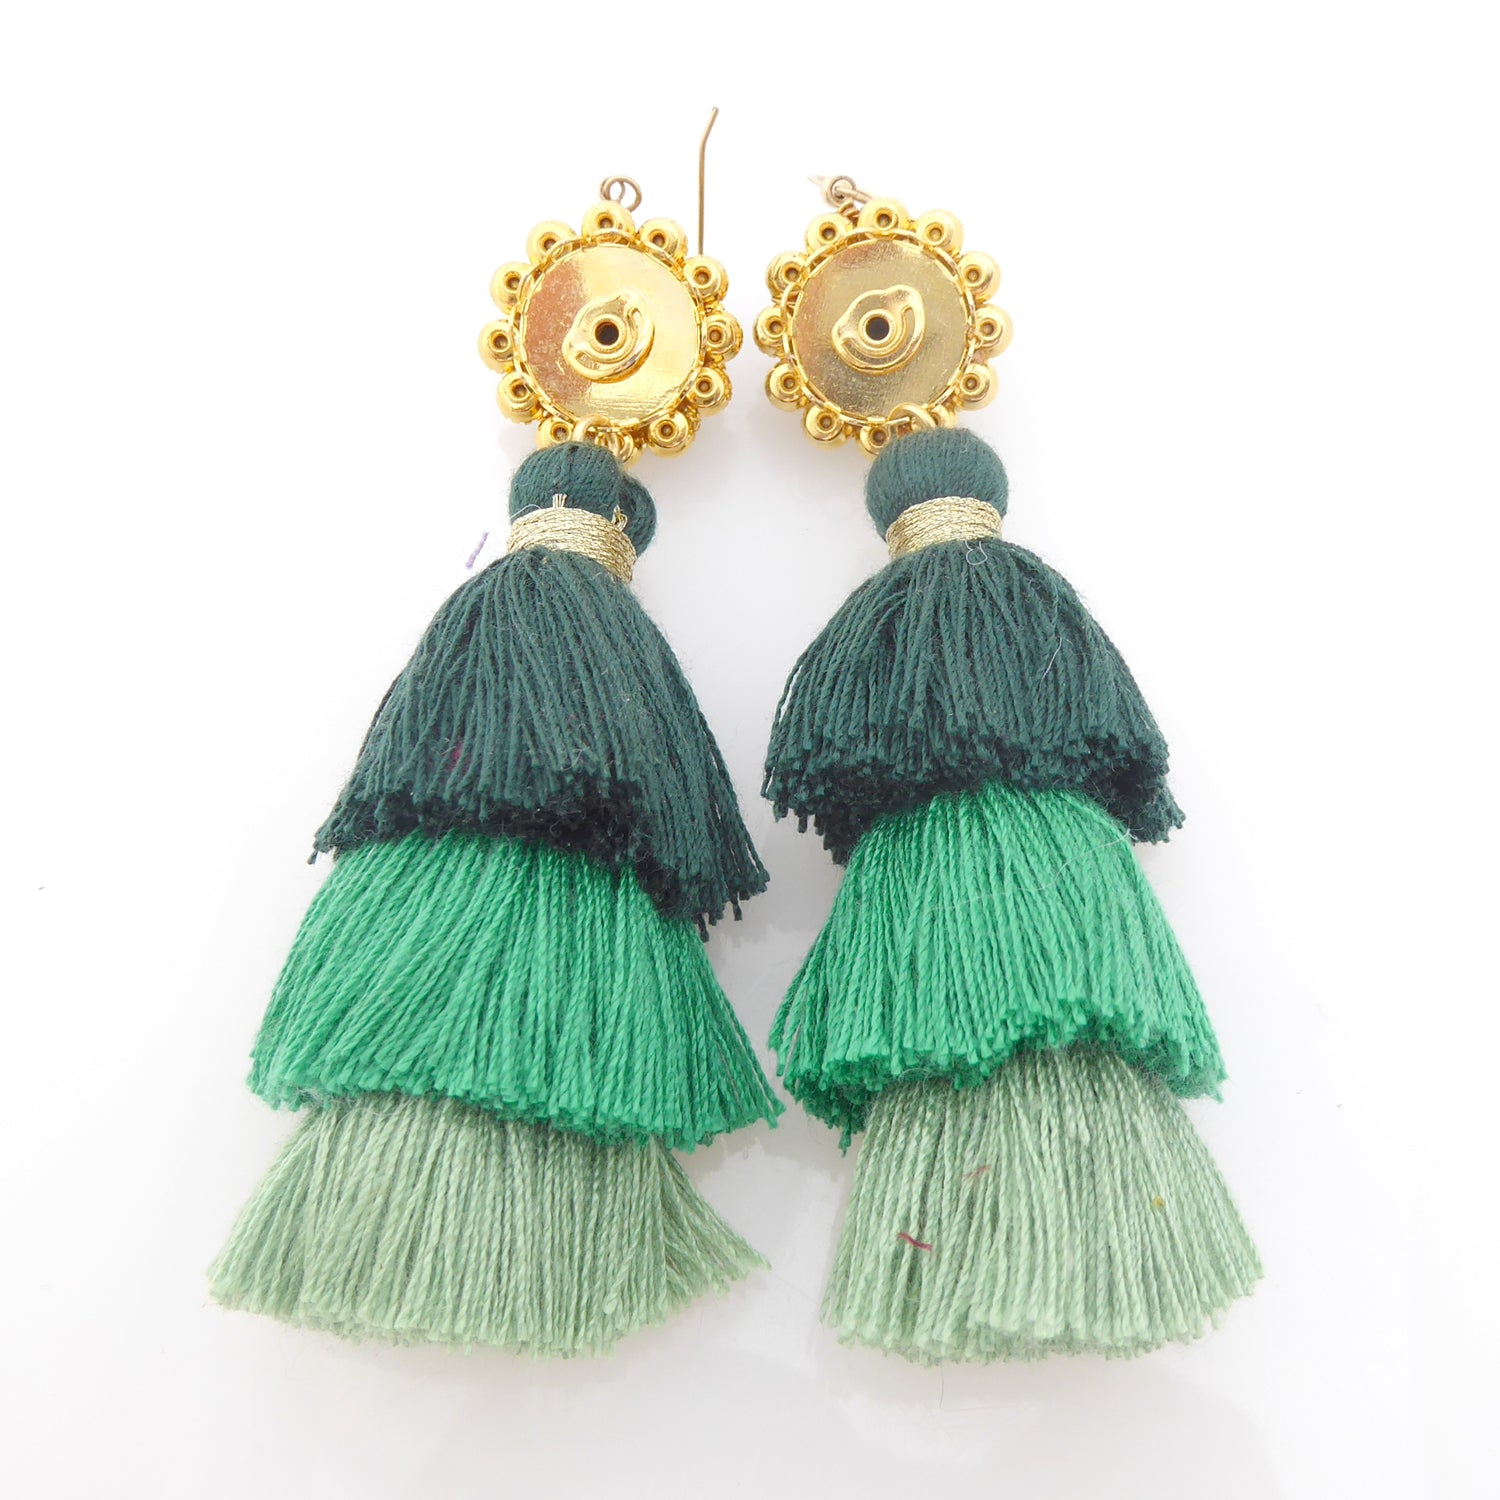 Green rhinestone tassel earrings